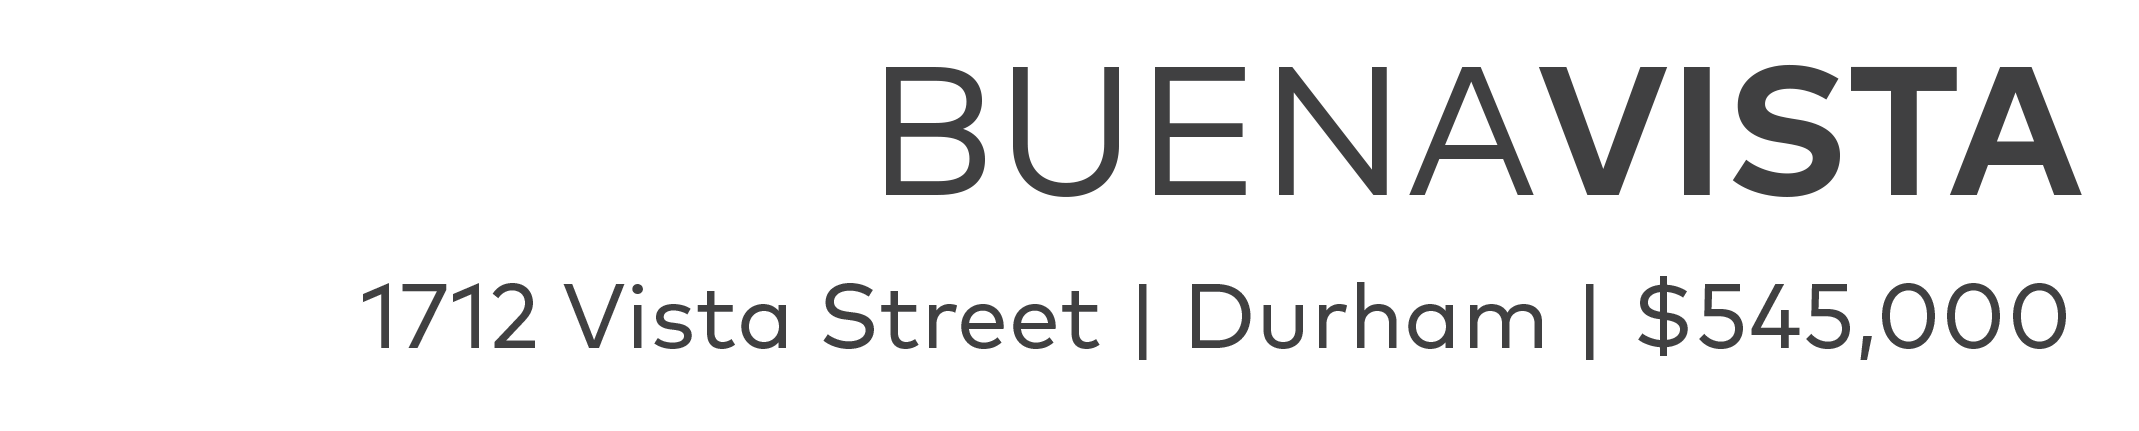 Buena Vista, Durham NC | Listing Agent: Chloe Seymore of RED Collective